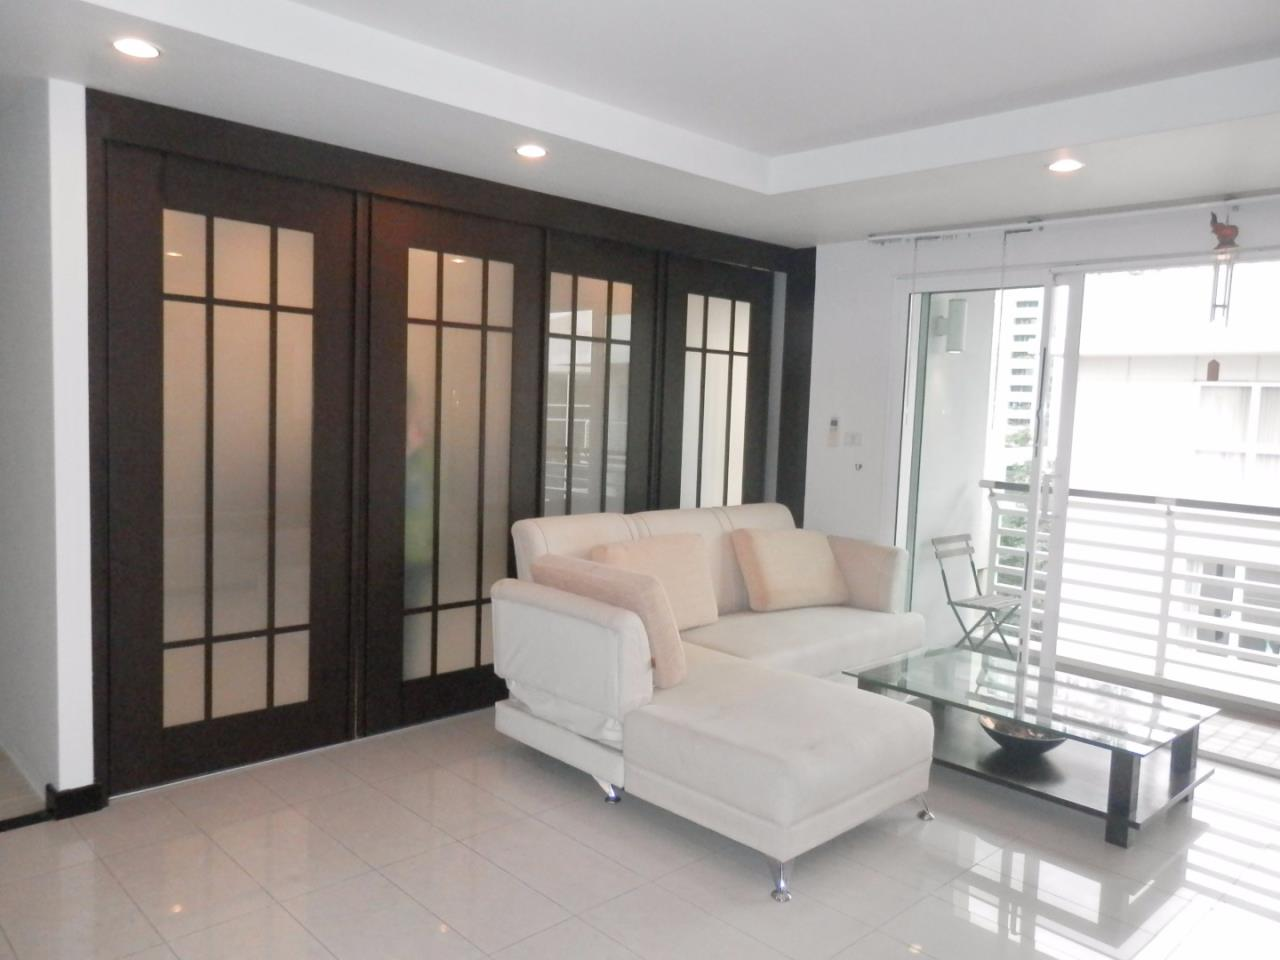 Century21 Skylux Agency's Avenue 61 / Condo For Rent / 3 Bedroom / 191 SQM / BTS Ekkamai / Bangkok 1